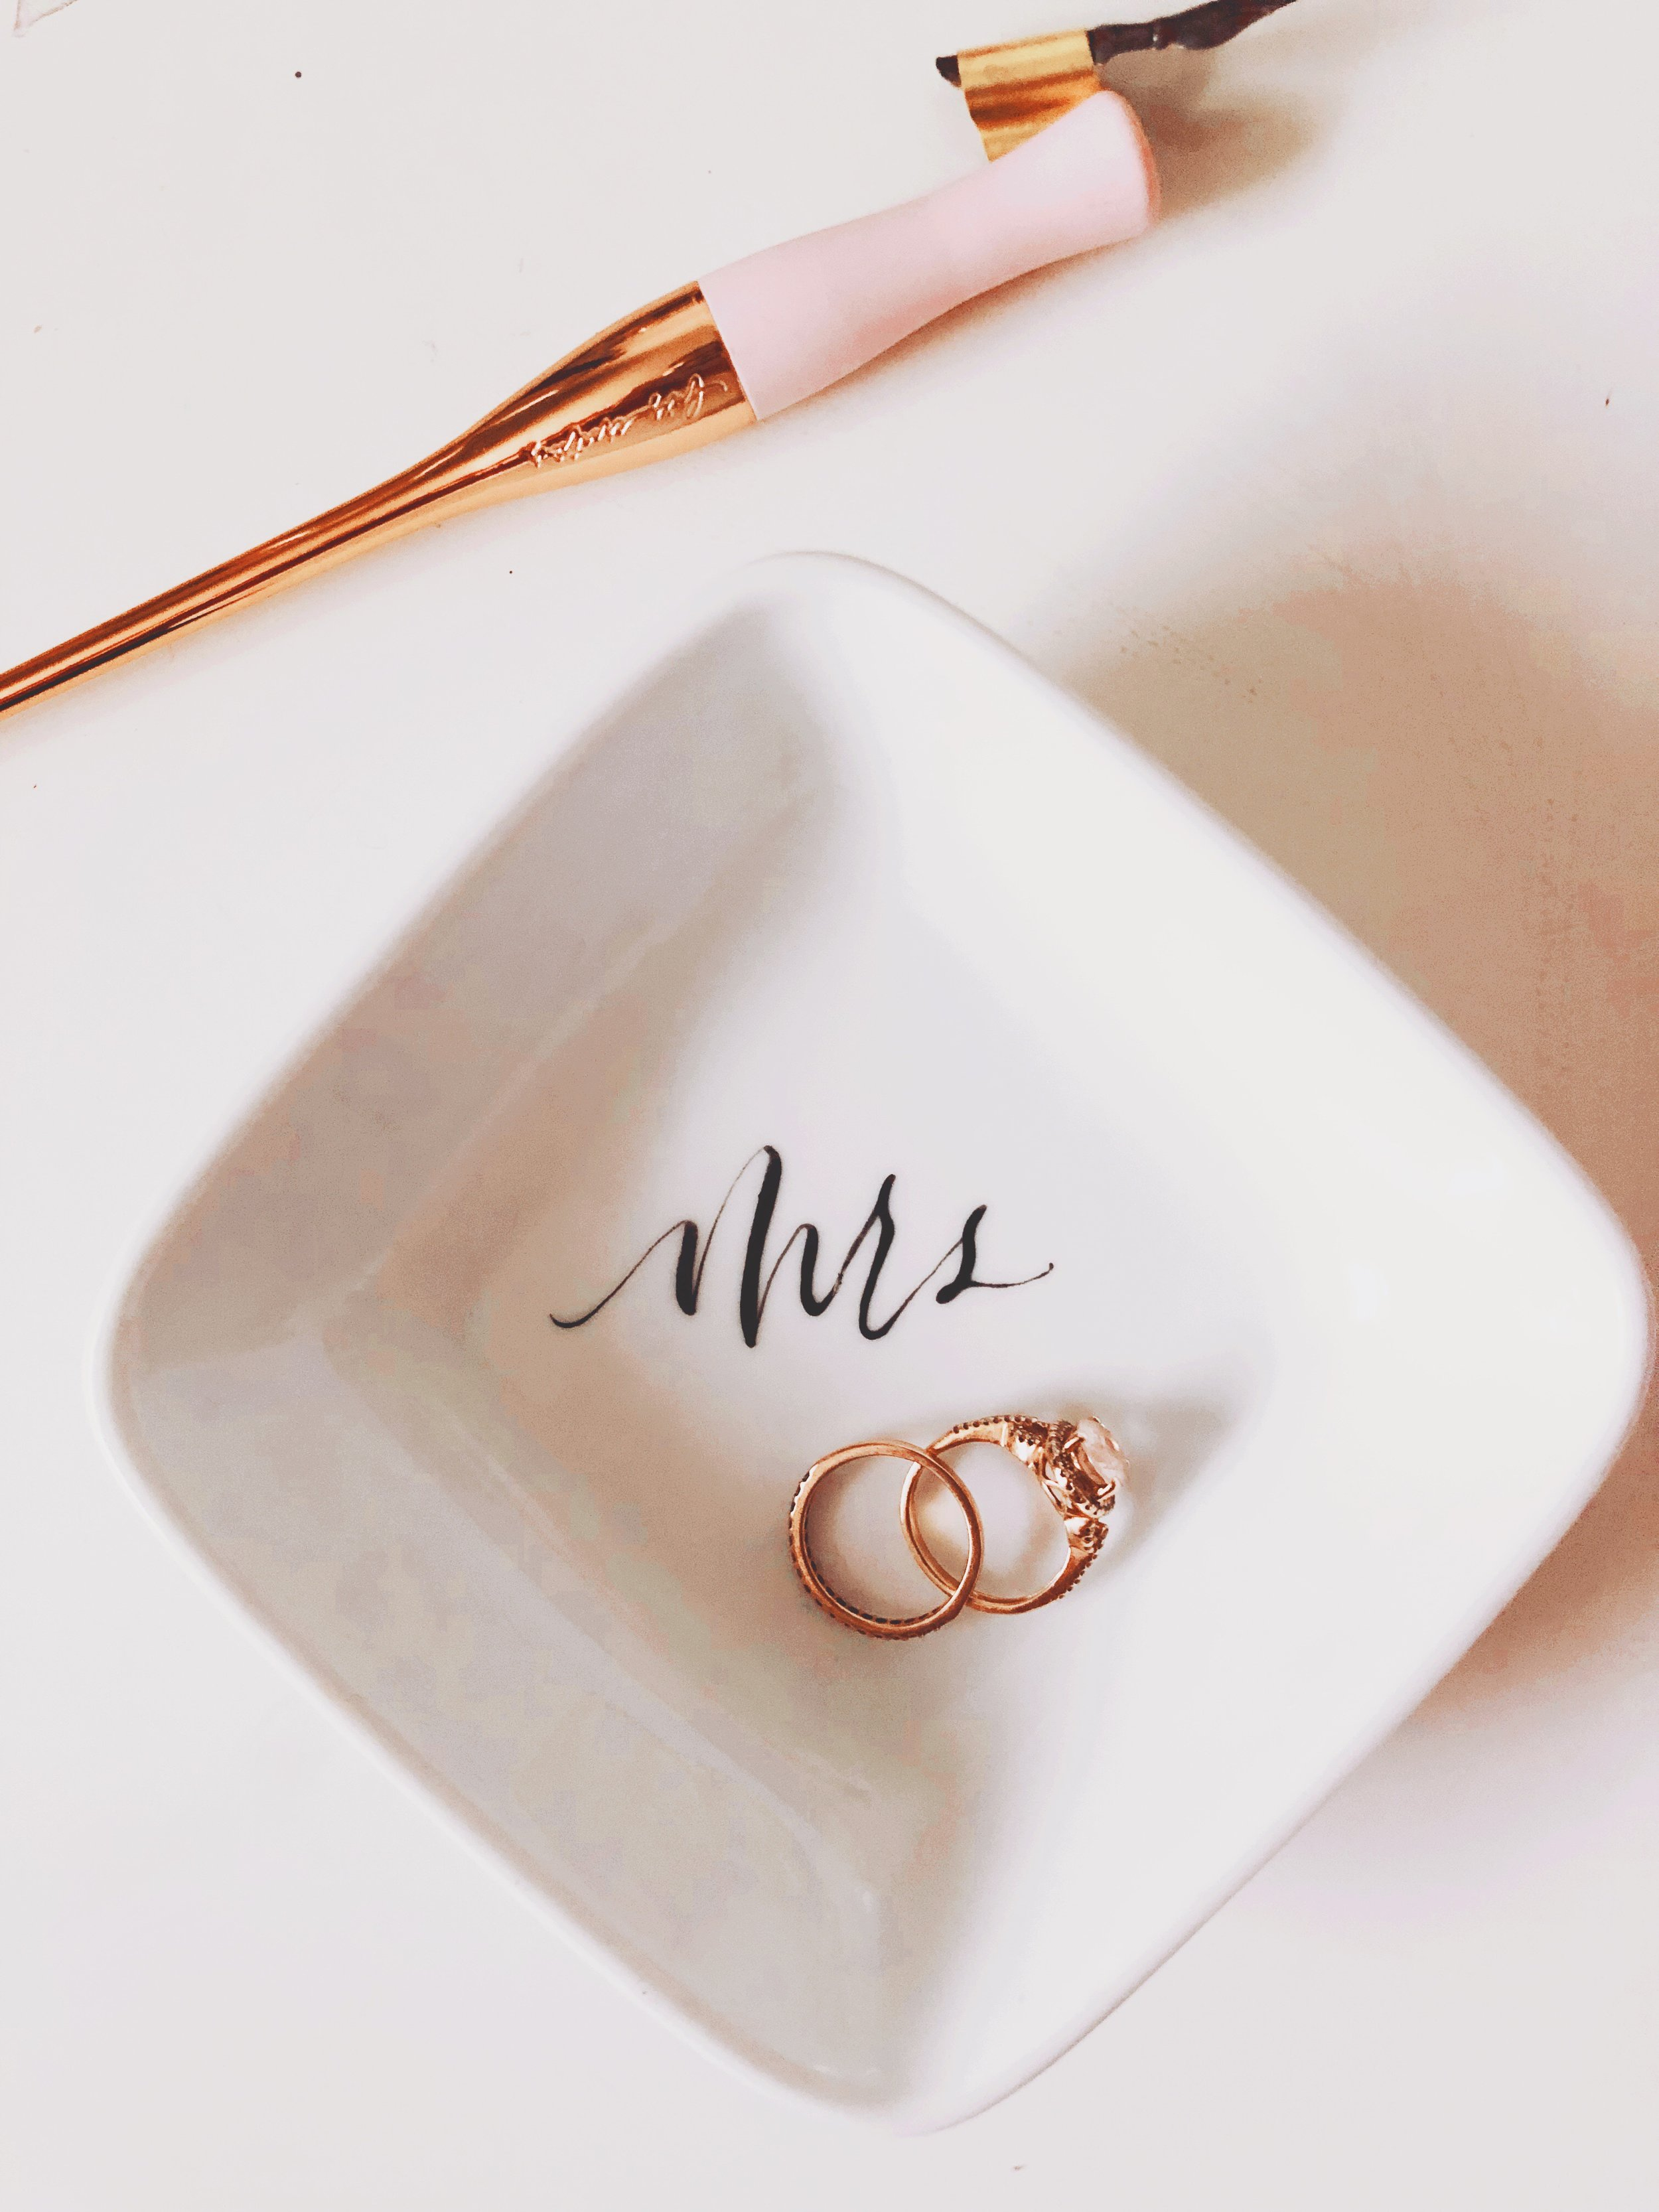 NEW ITEM - Hand lettered ring dish